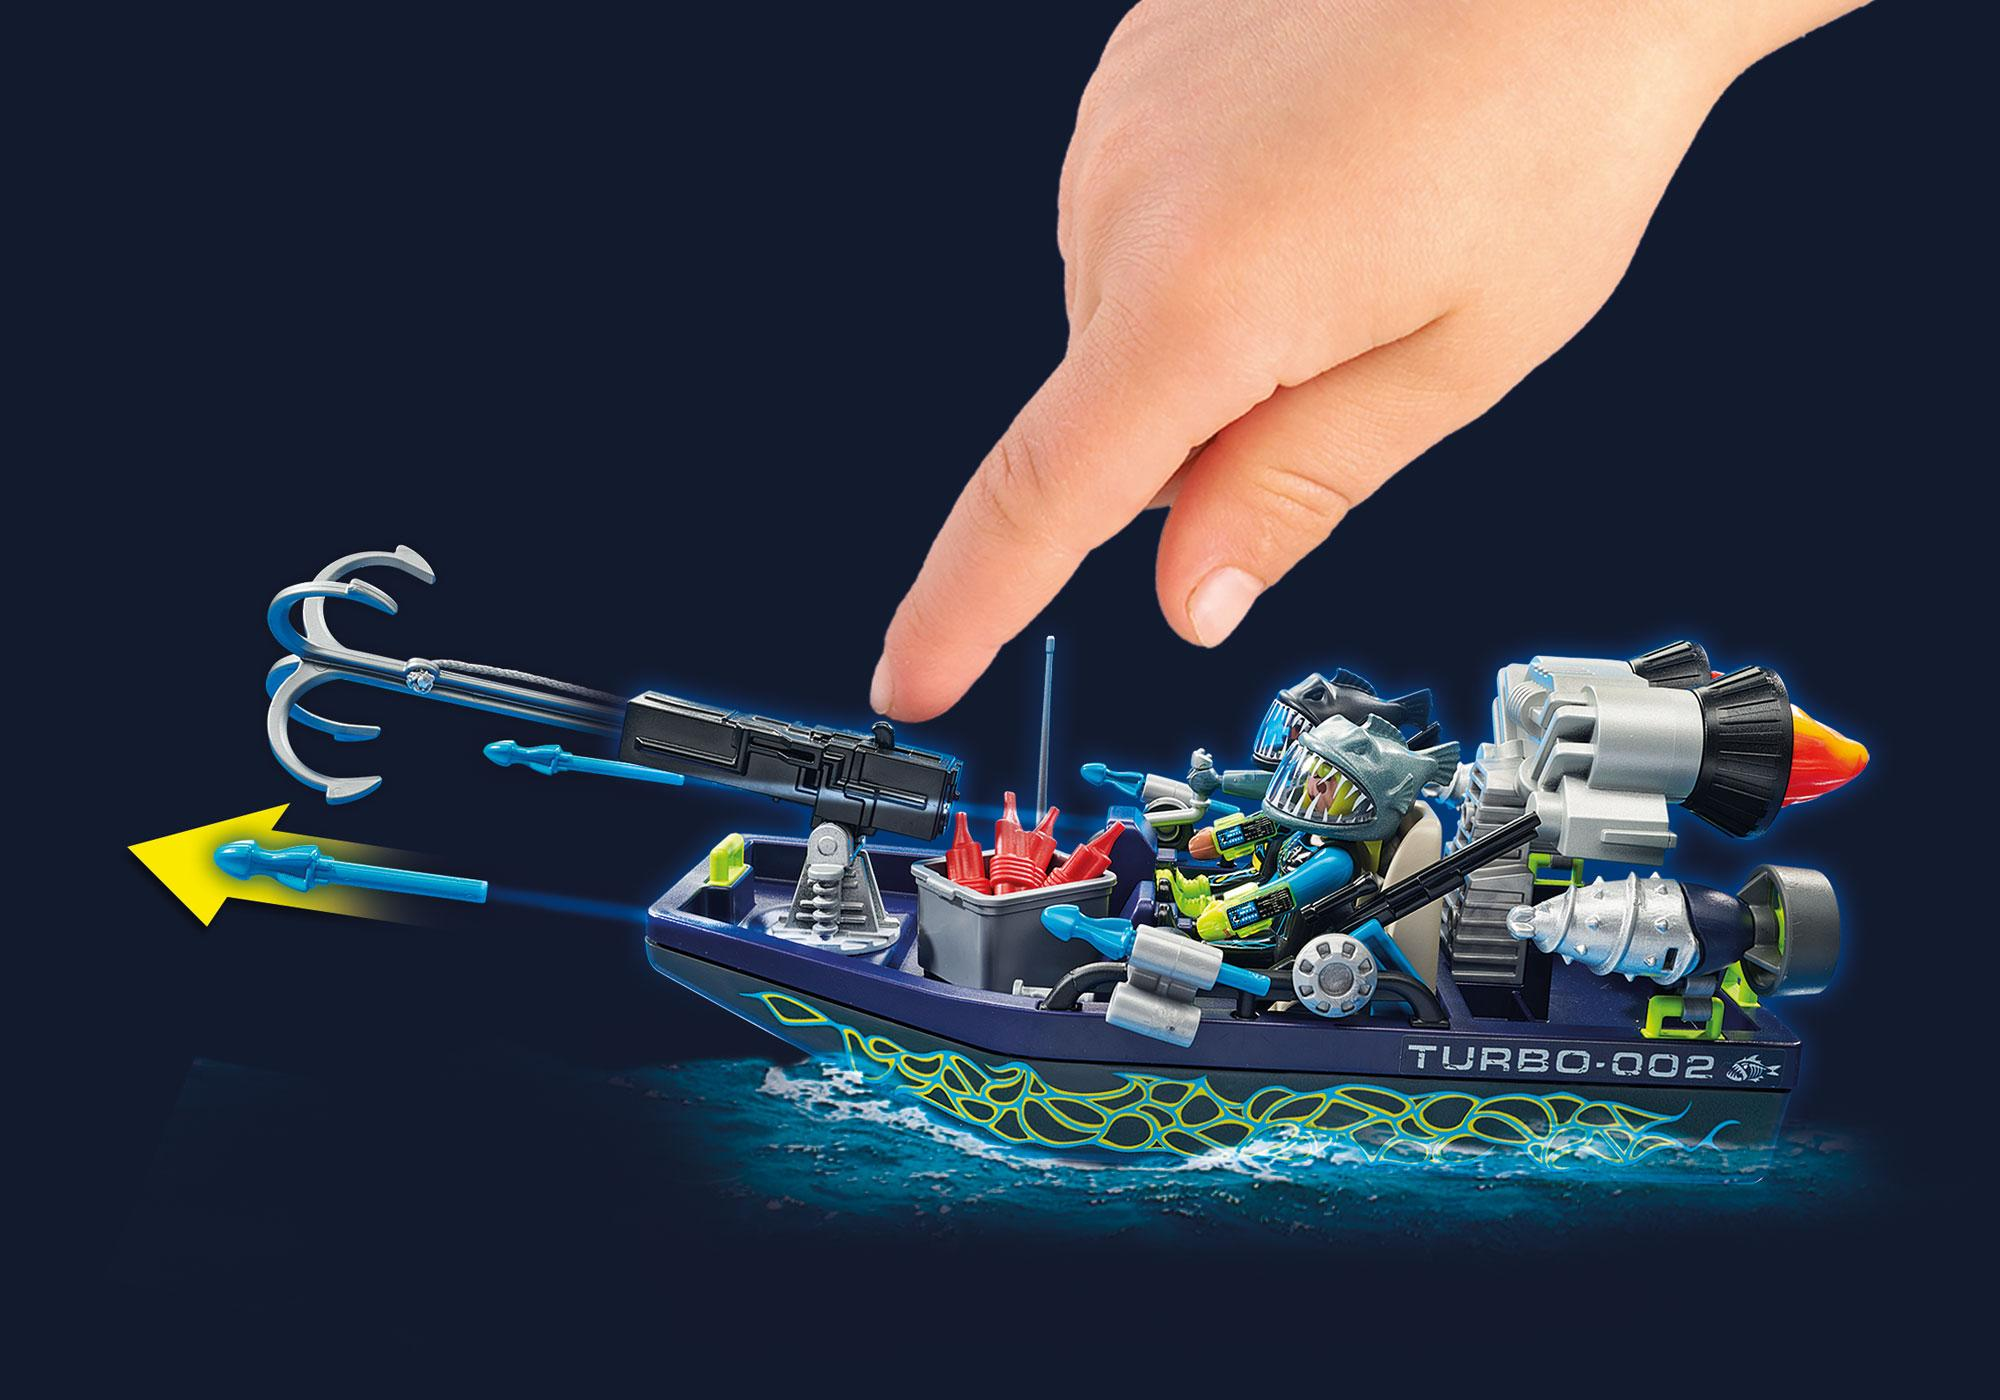 http://media.playmobil.com/i/playmobil/70006_product_extra1/TEAM S.H.A.R.K. Harpoon Craft